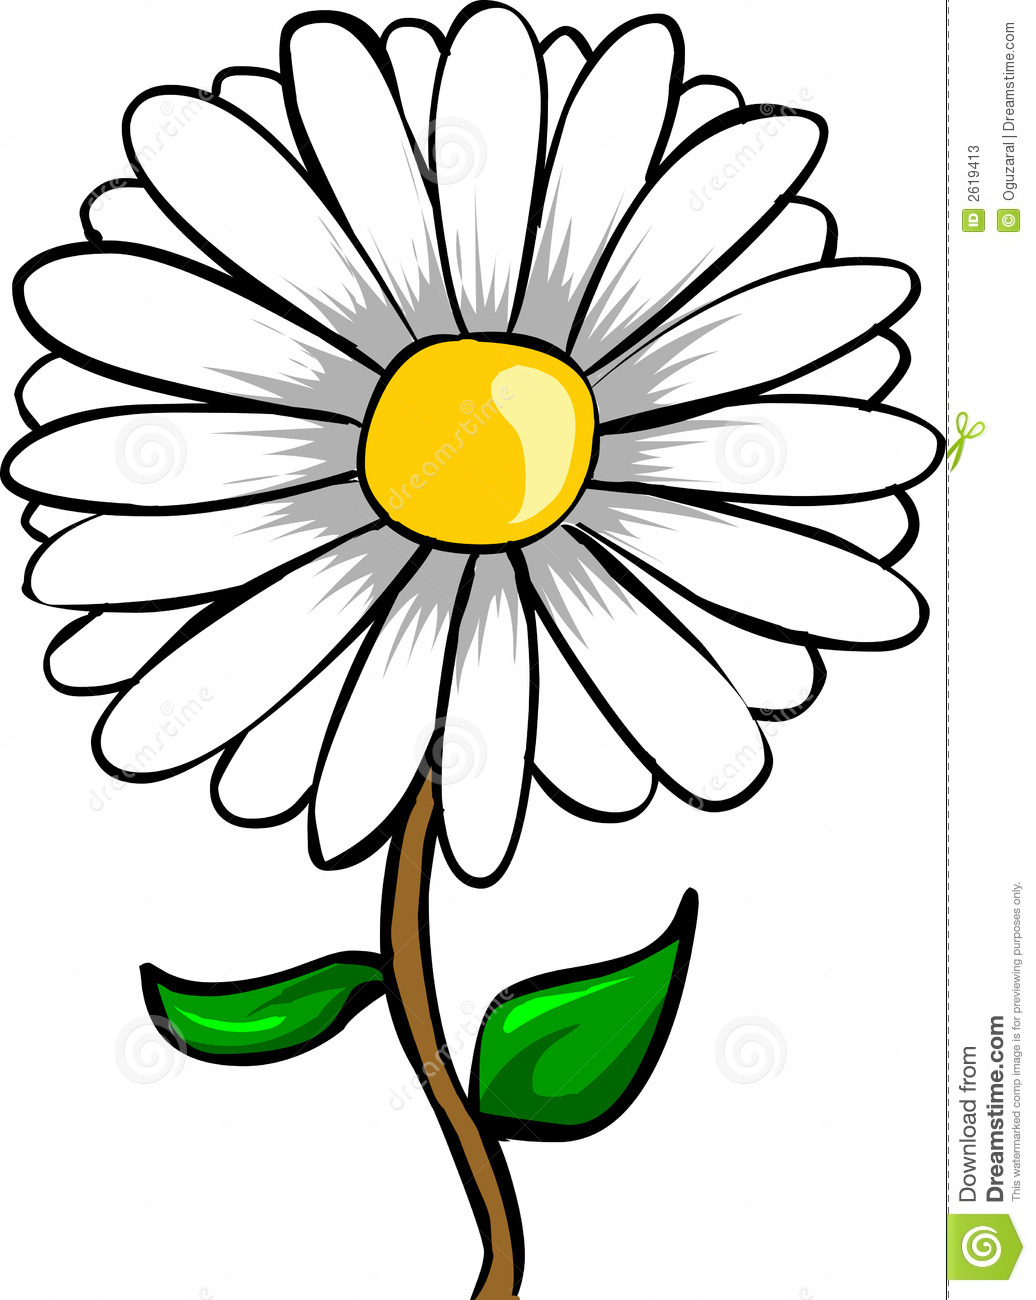 Daisy clipart #14, Download drawings